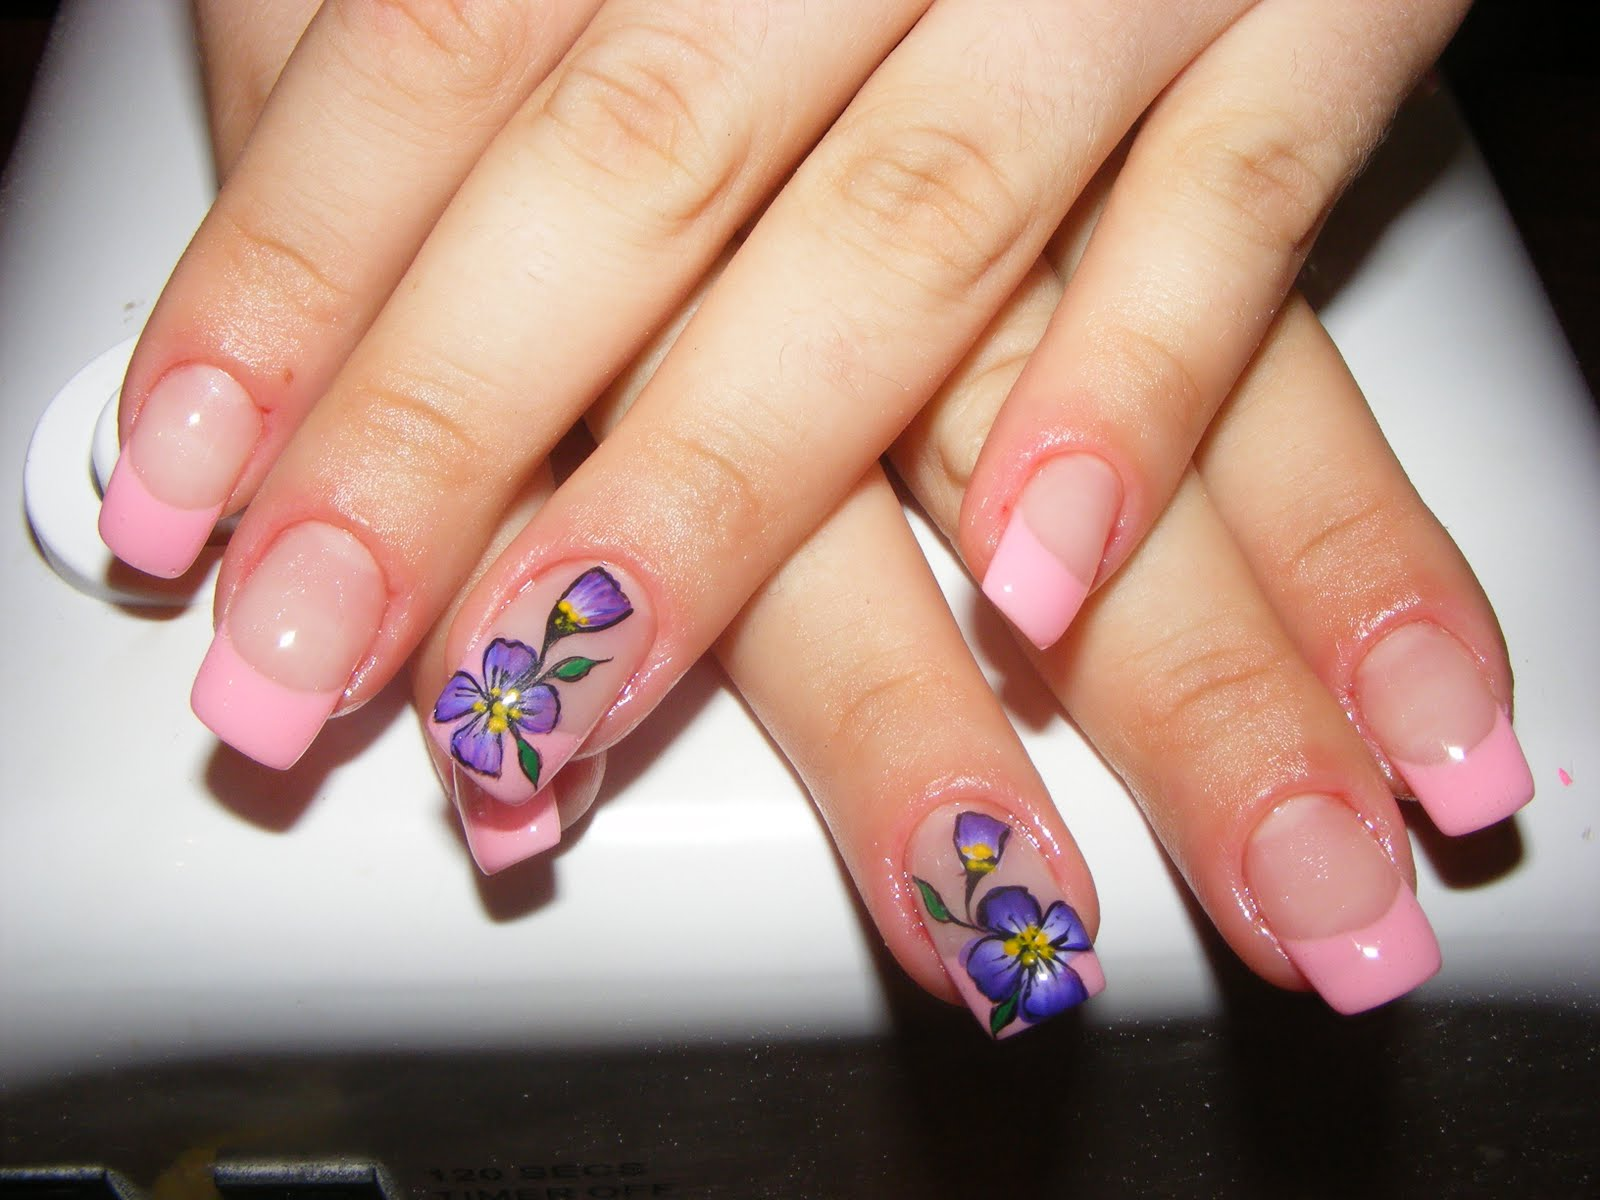 The Charming Example for nails art design 2015 Images